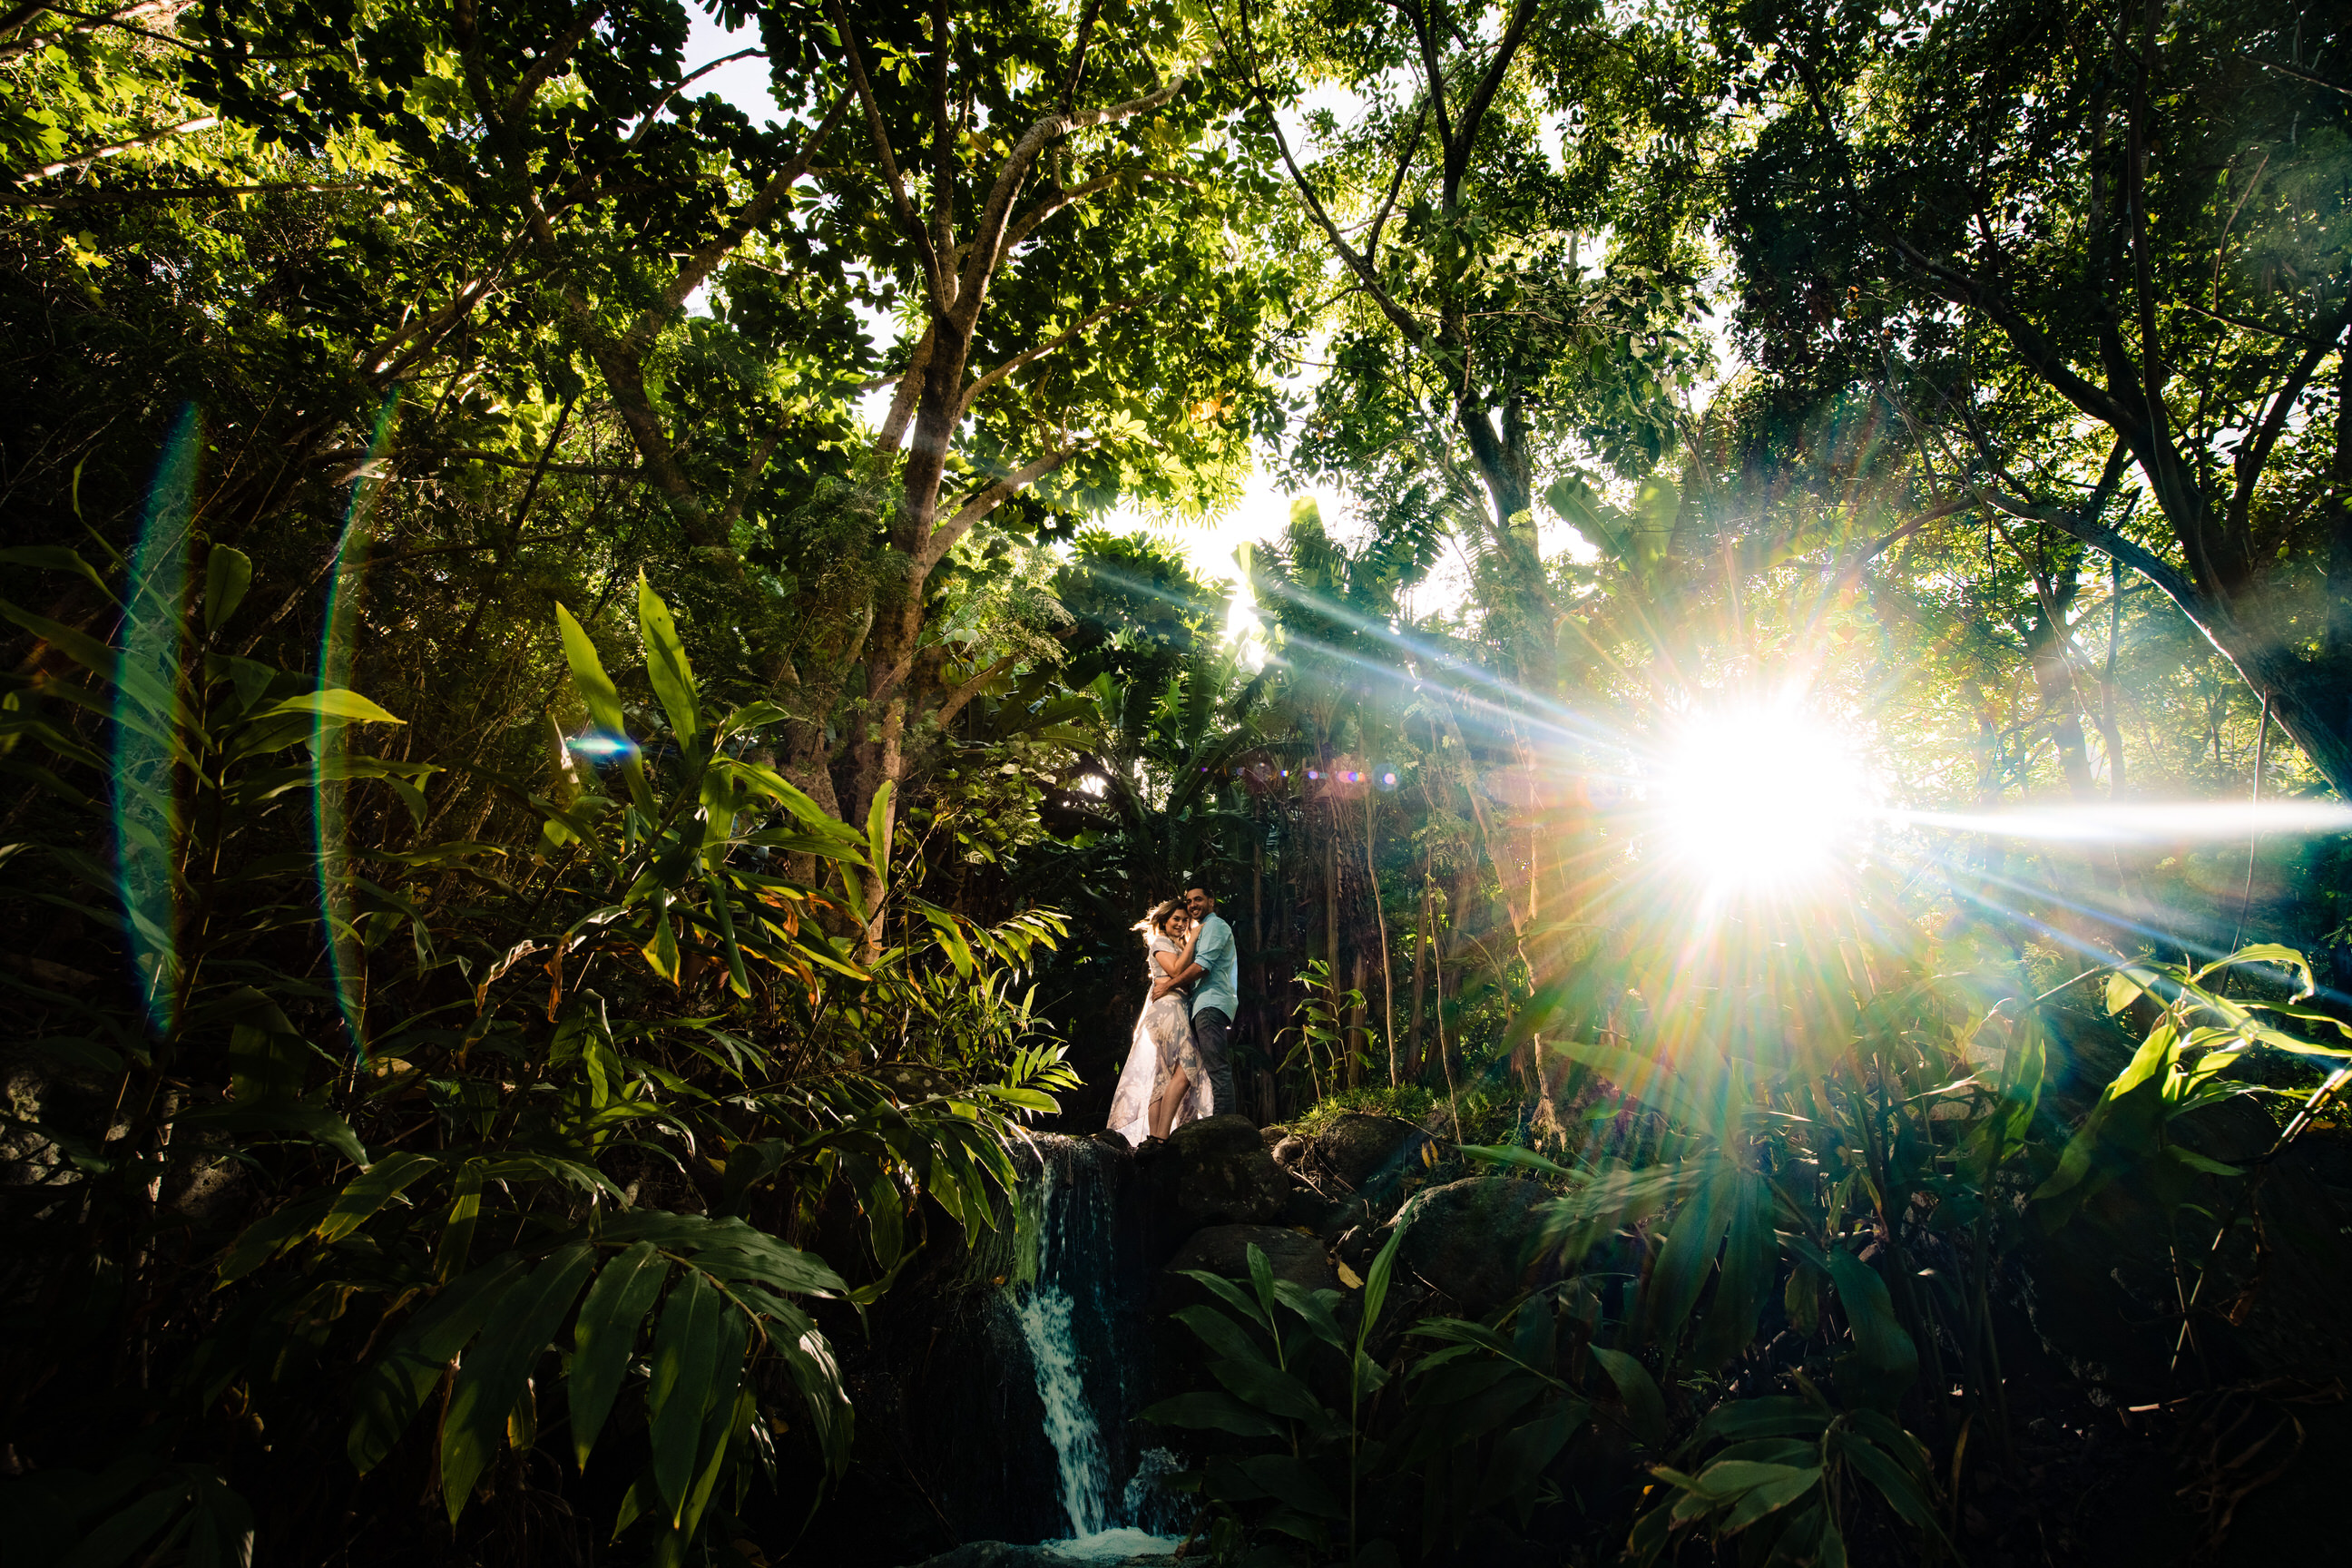 engagement photo in tropical forest - photo by Angela Nelson Photography